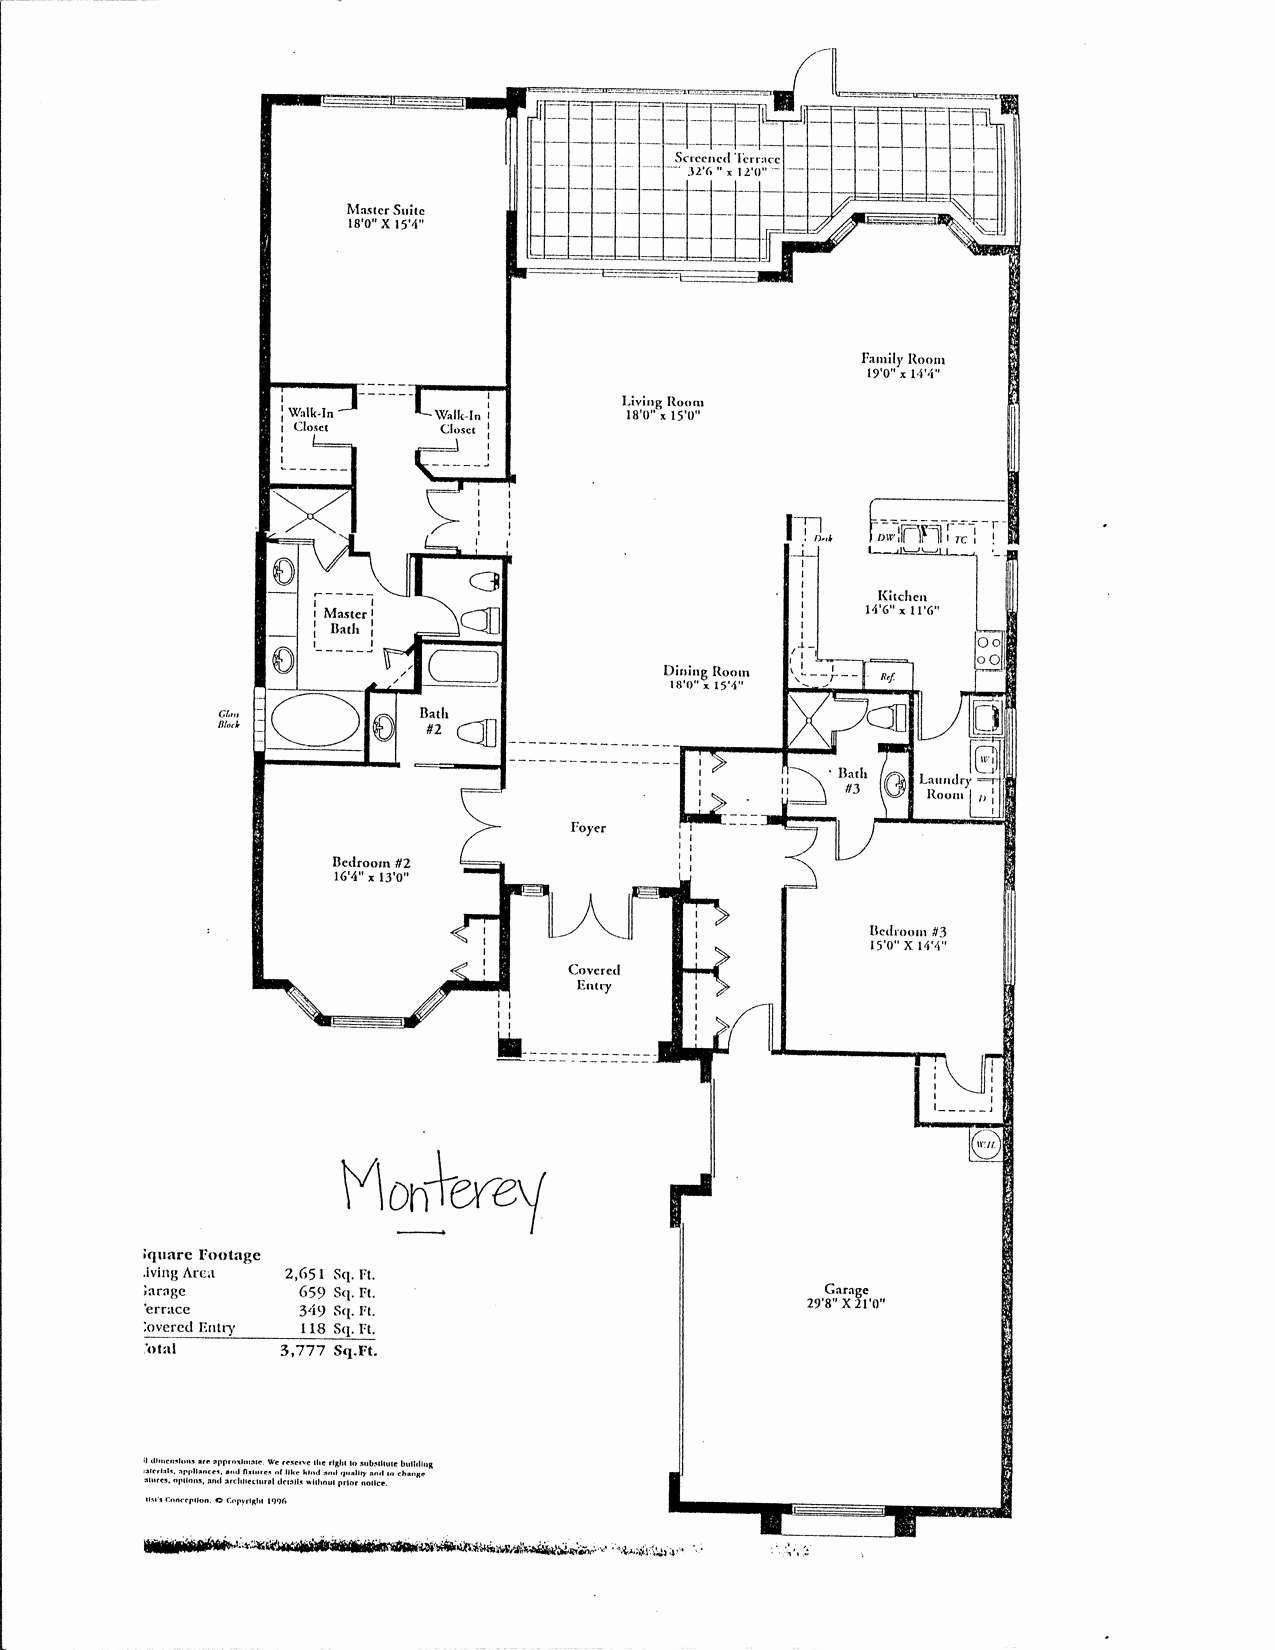 modern house floor plans for sale 24 new modern luxury house plan collection floor plan design of modern house floor plans for sale